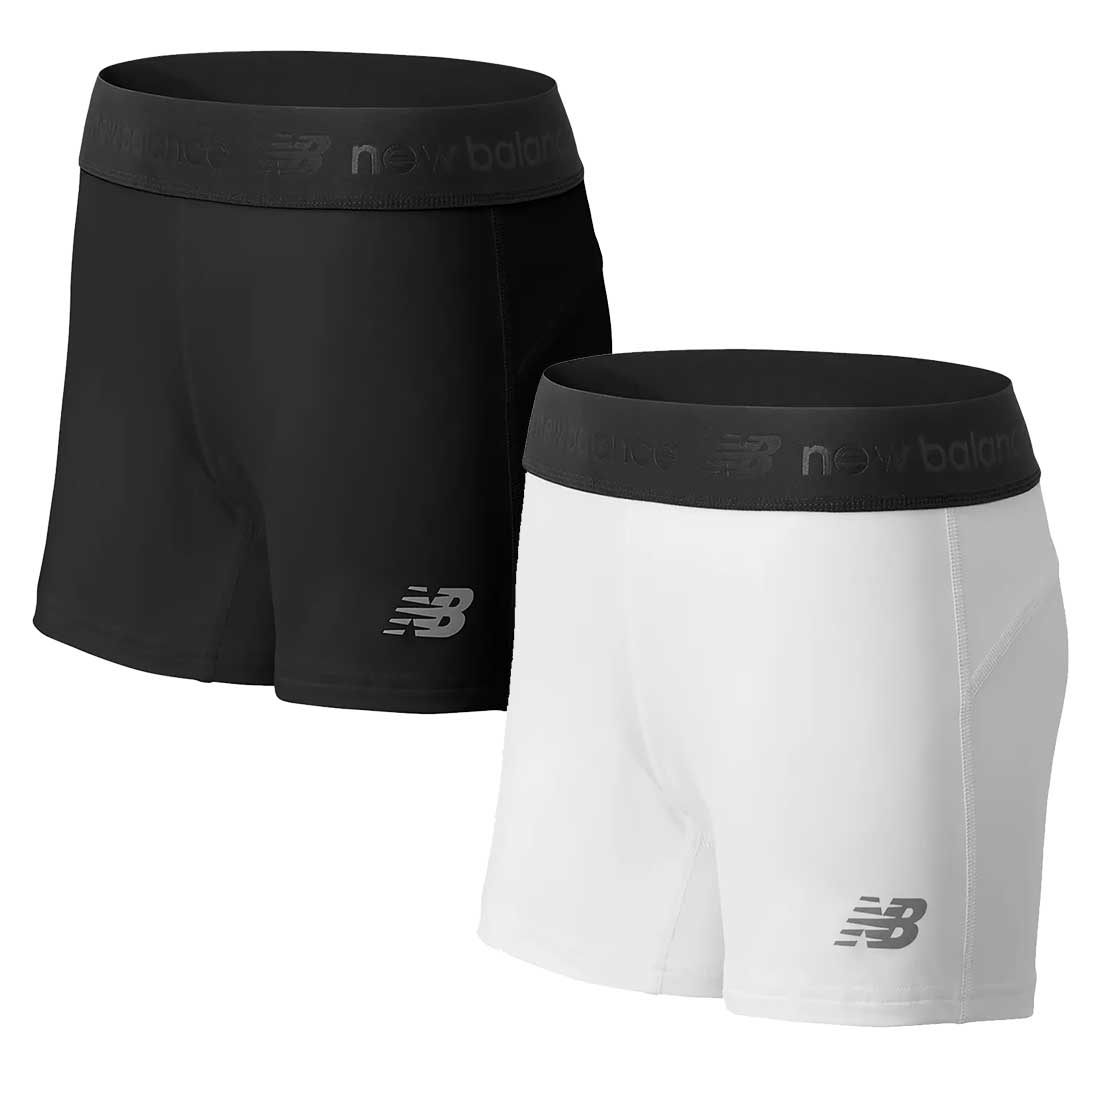 wholesale dealer e72e1 90417 New Balance Compression Shorts - longstreth.com